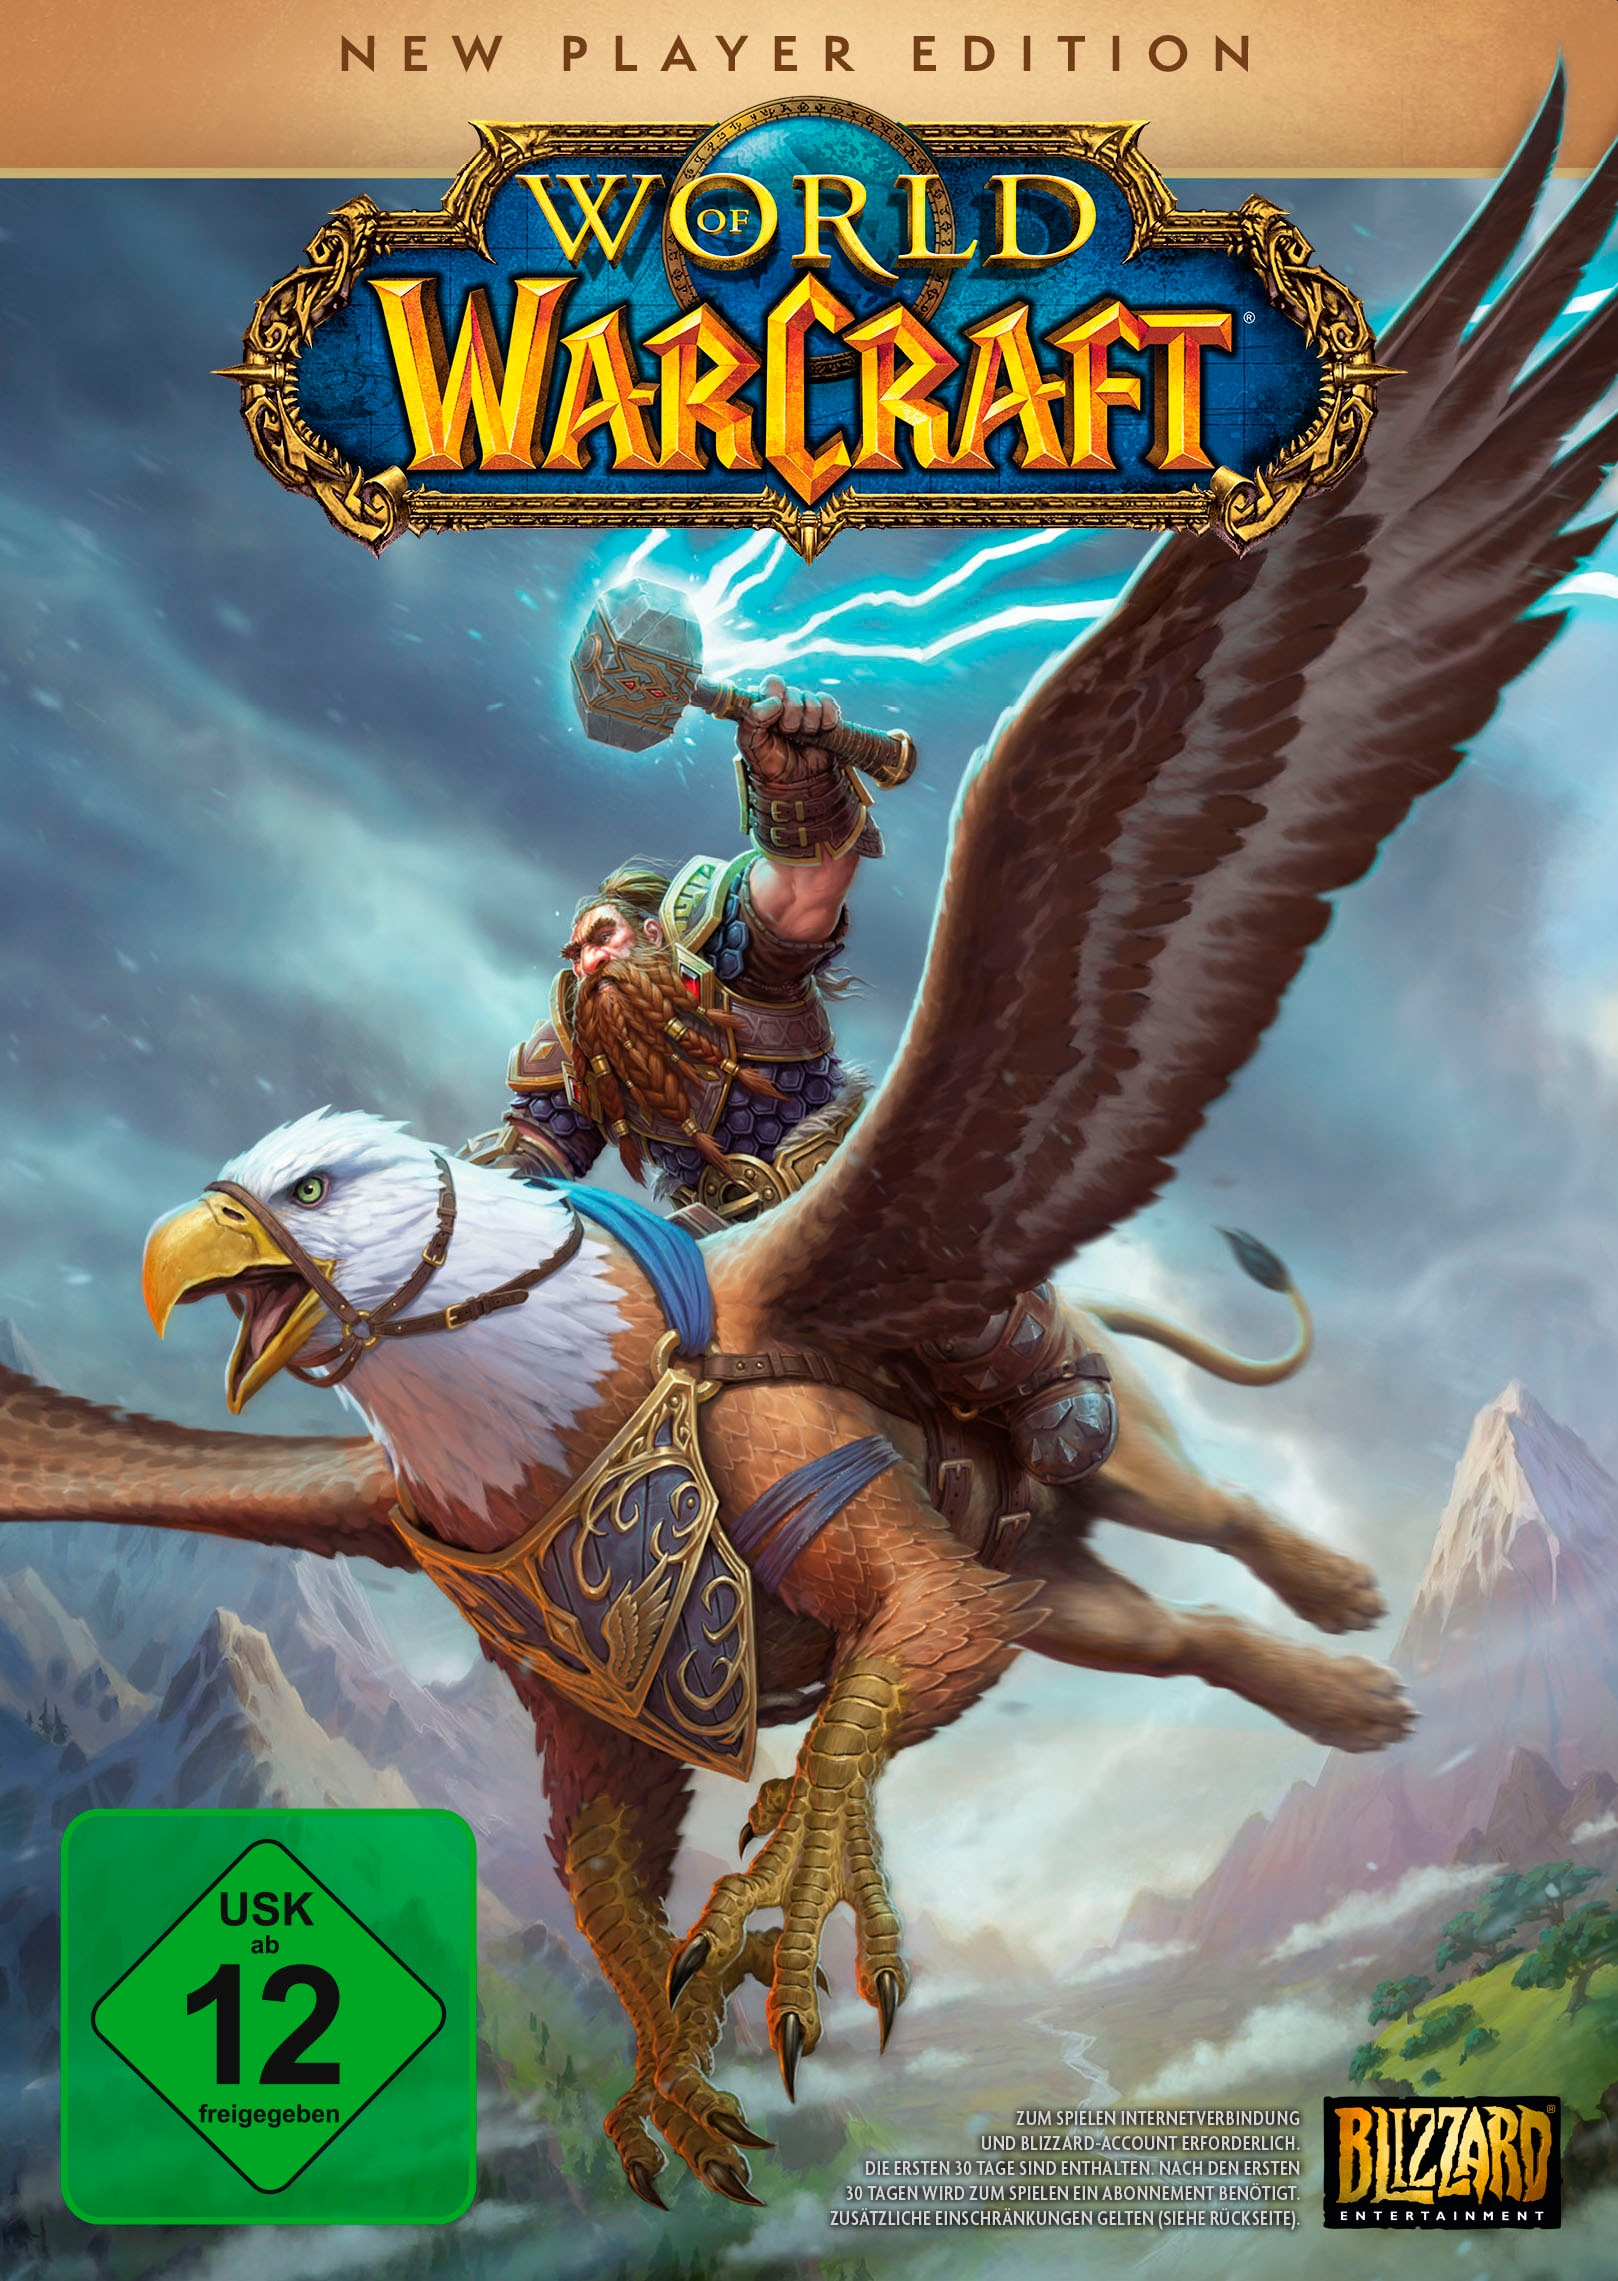 Image of World of Warcraft - New Player Edition PC